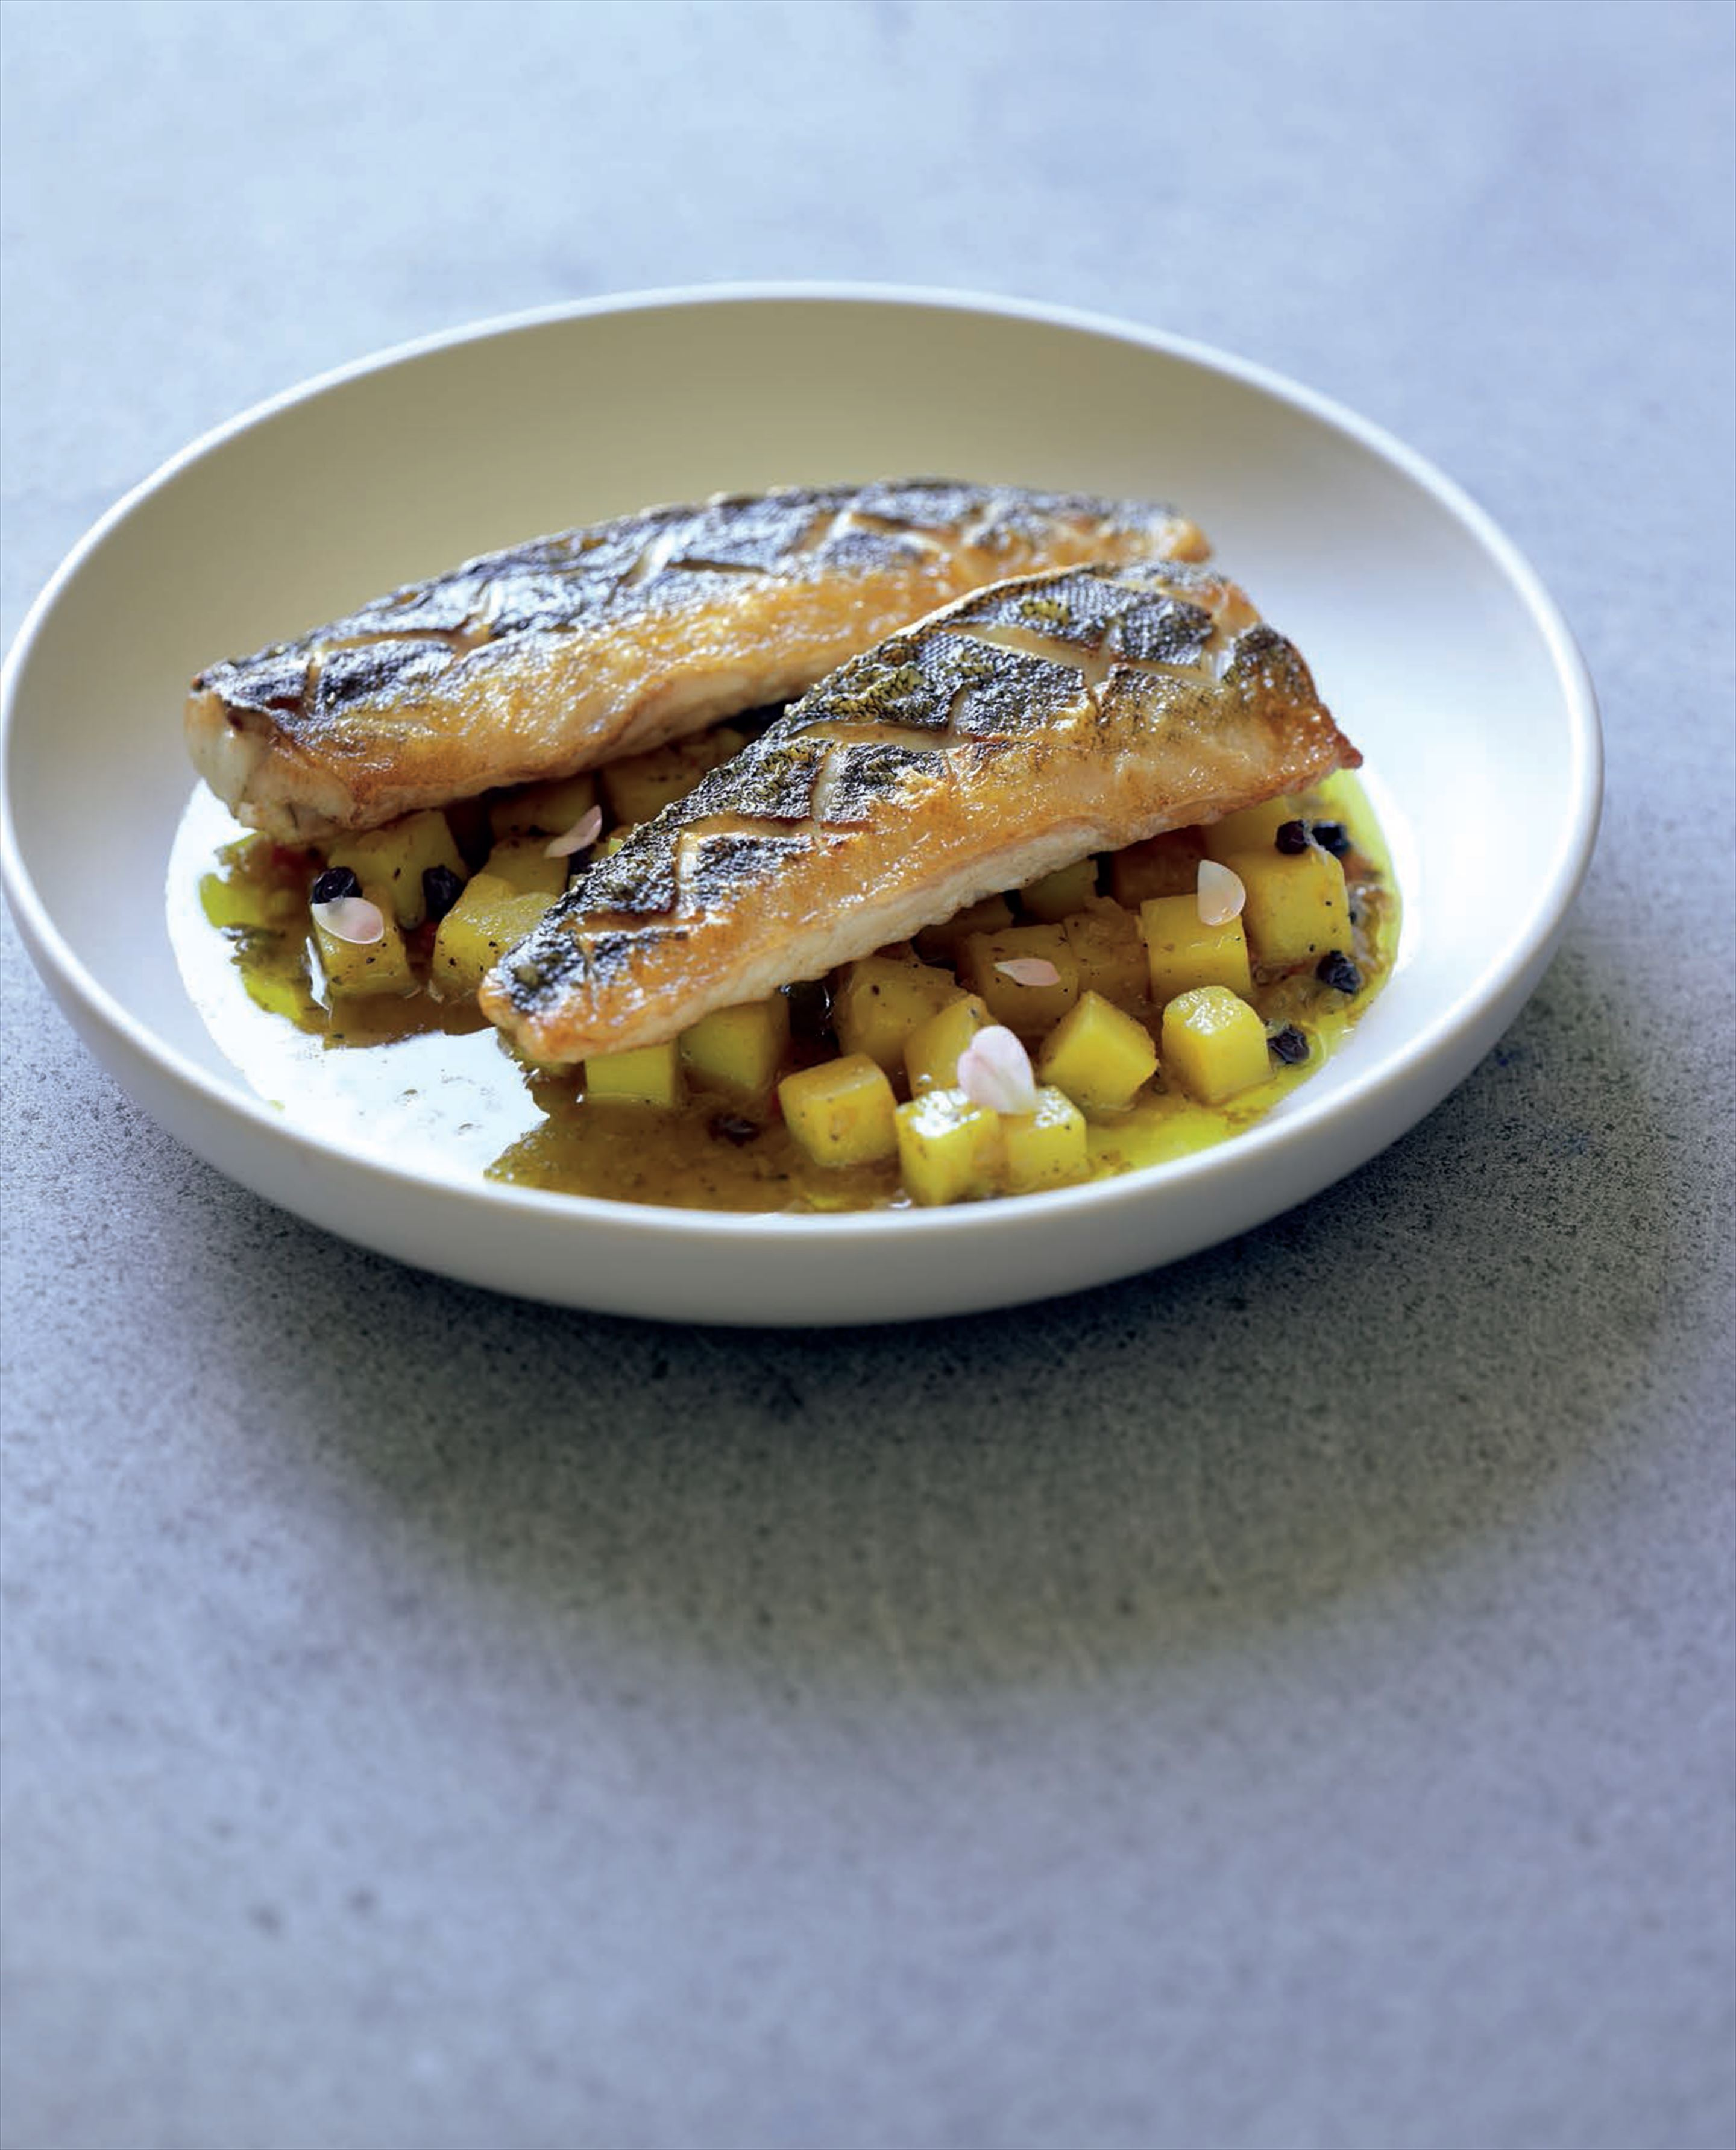 Persian gulf-style fish with saffron-lemon potatoes